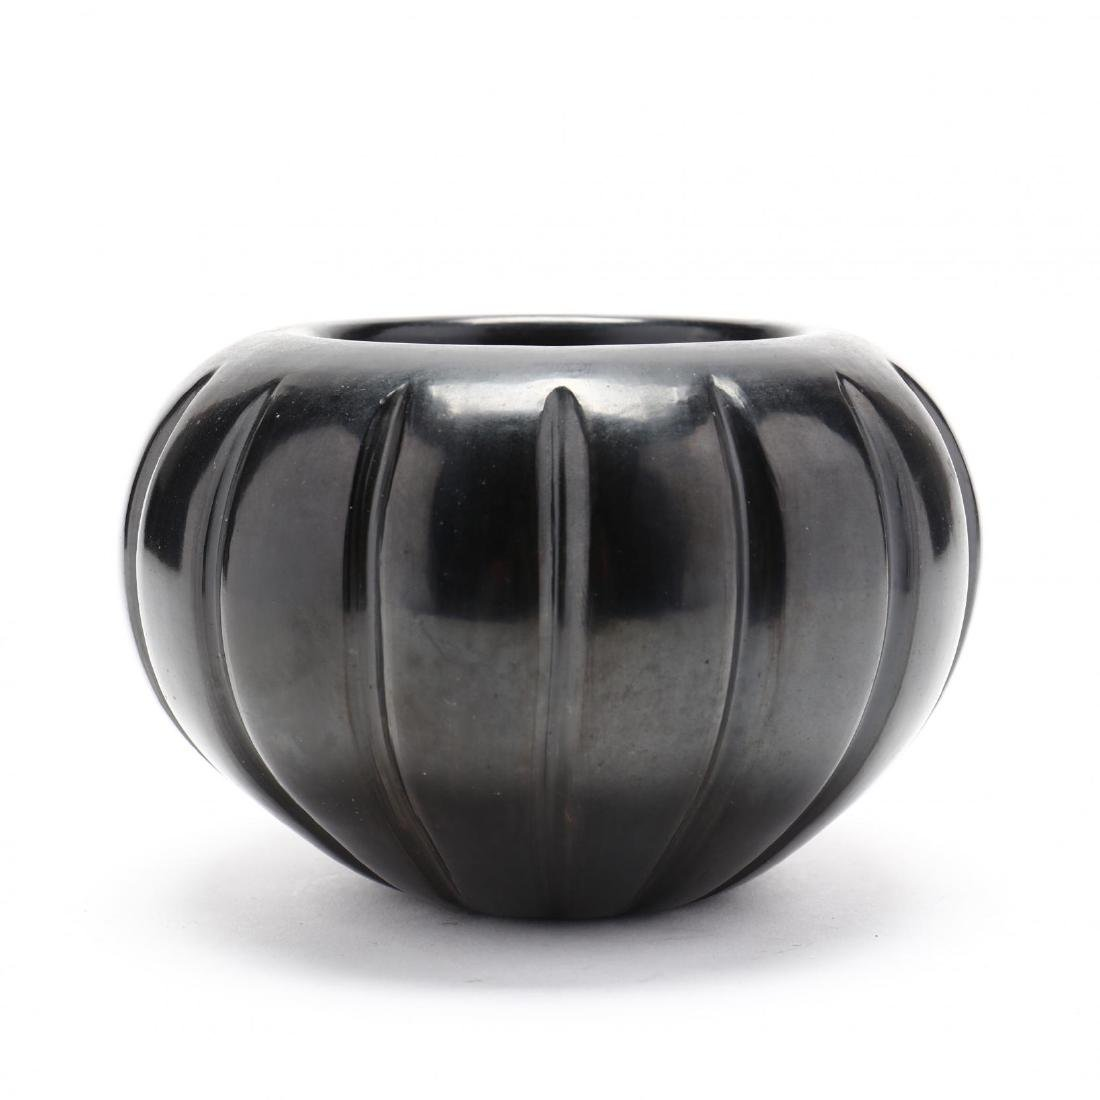 Angela Baca, Santa Clara, 1927-2014), Blackware Melon